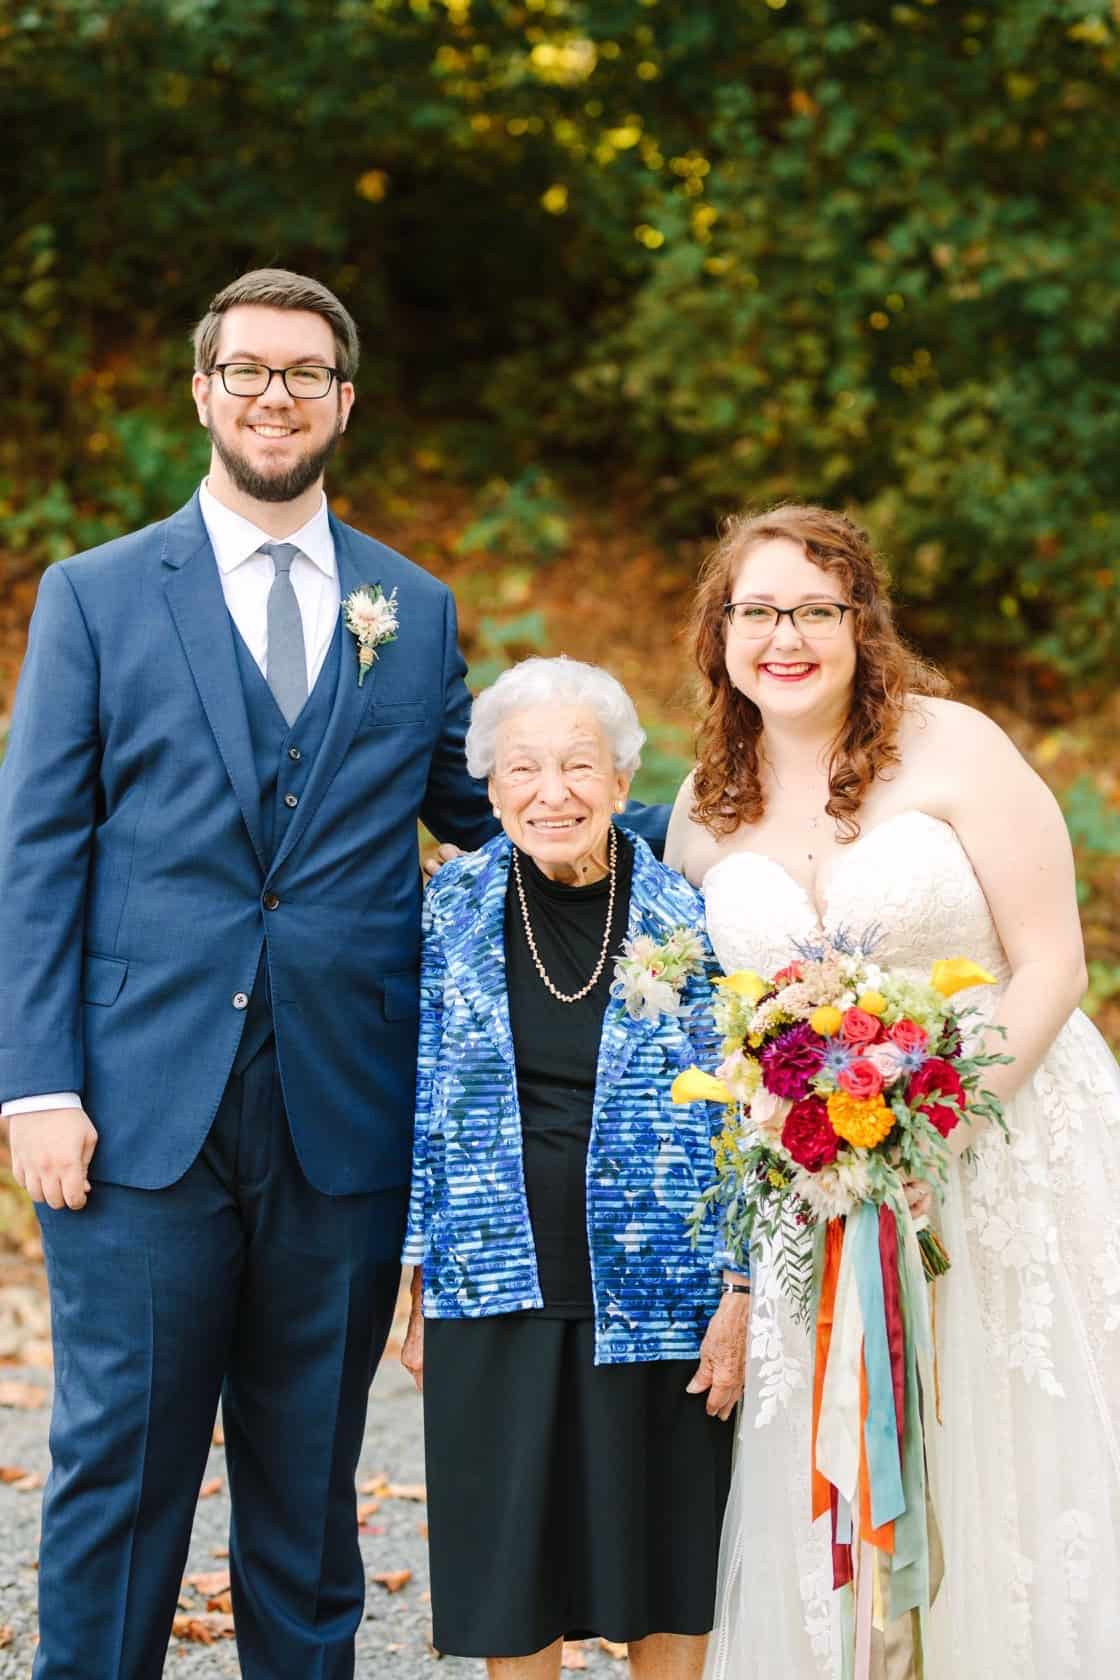 A wedding photo with my grandmother